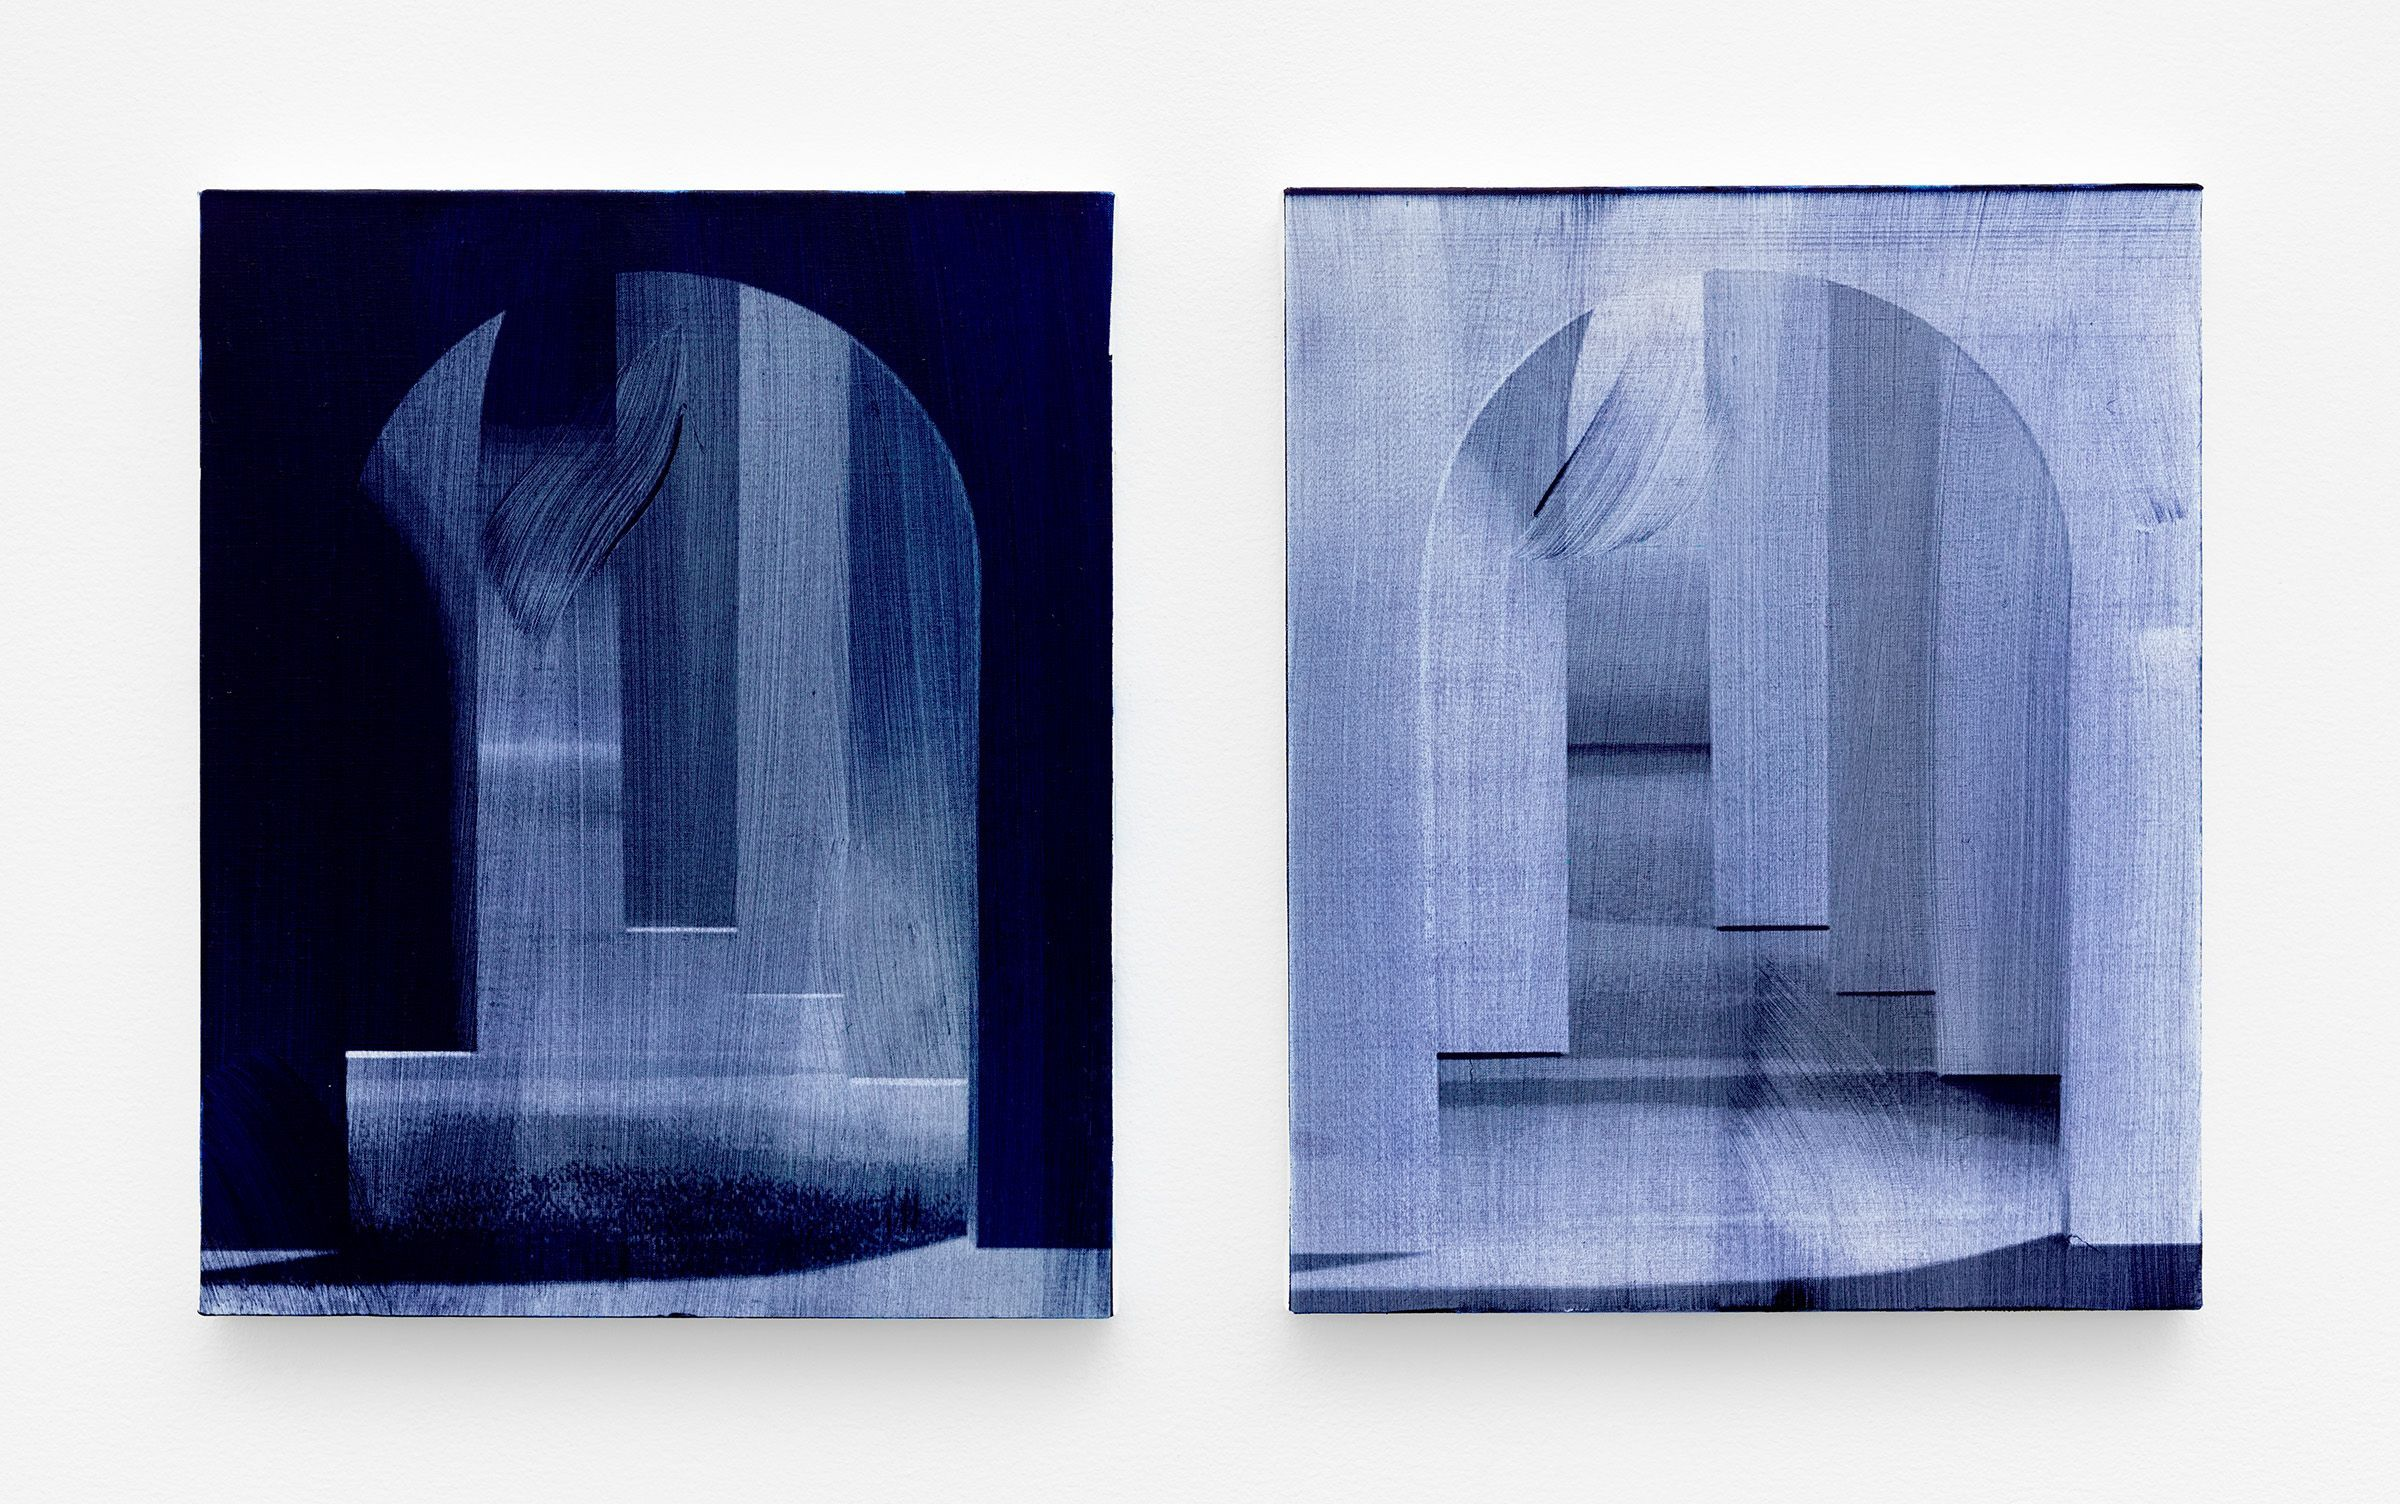 Dean levin artists marianne boesky gallery with